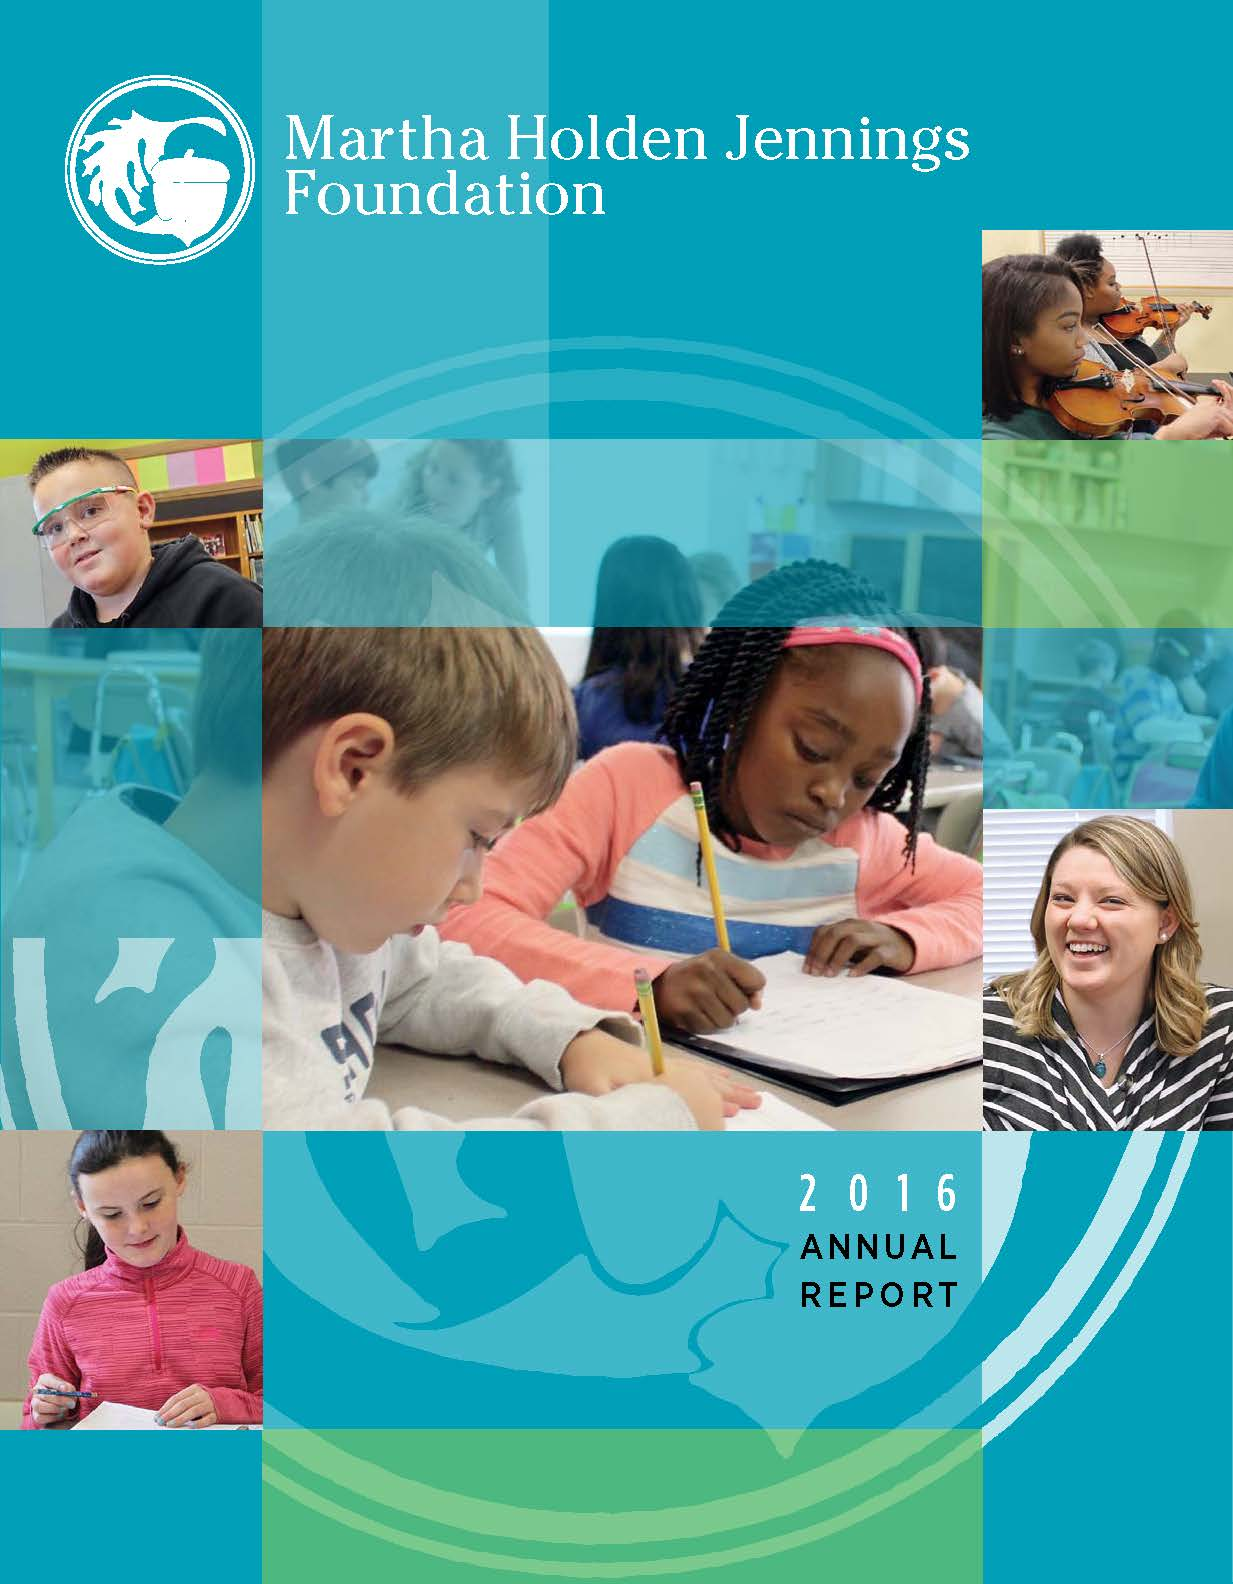 The 2016 MHJF Annual Report